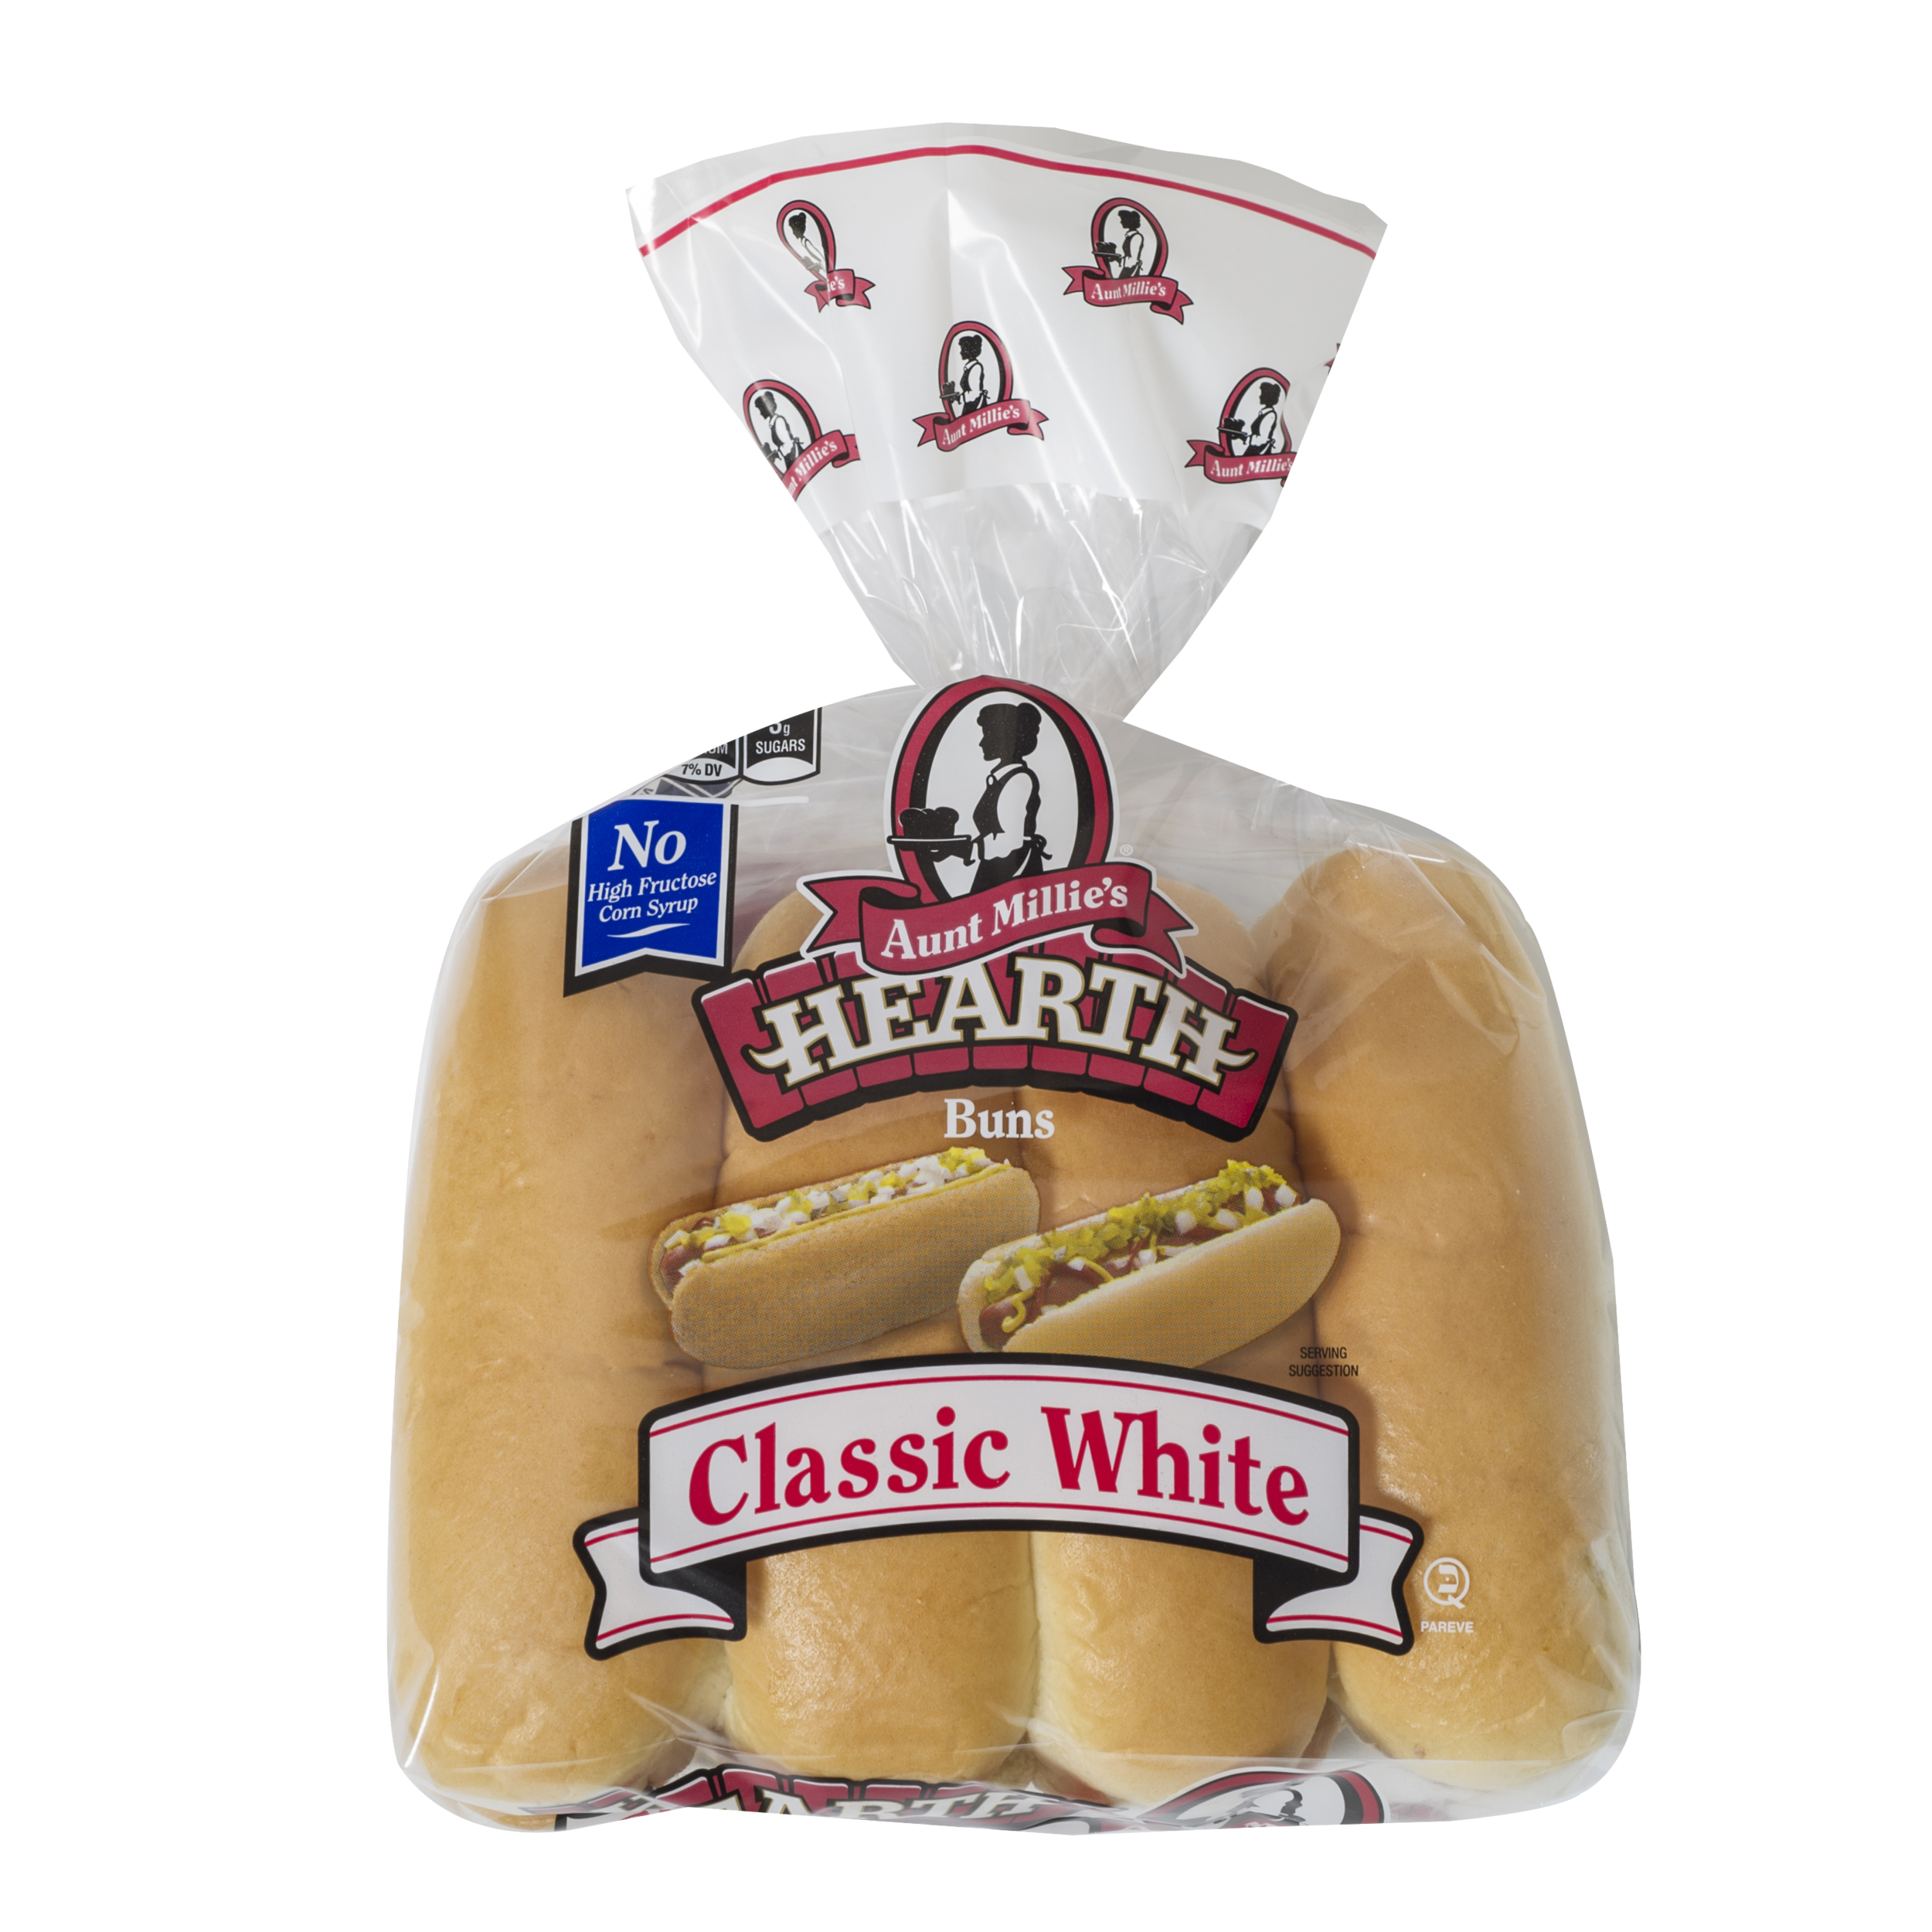 AM Hearth Classic White Hots.png